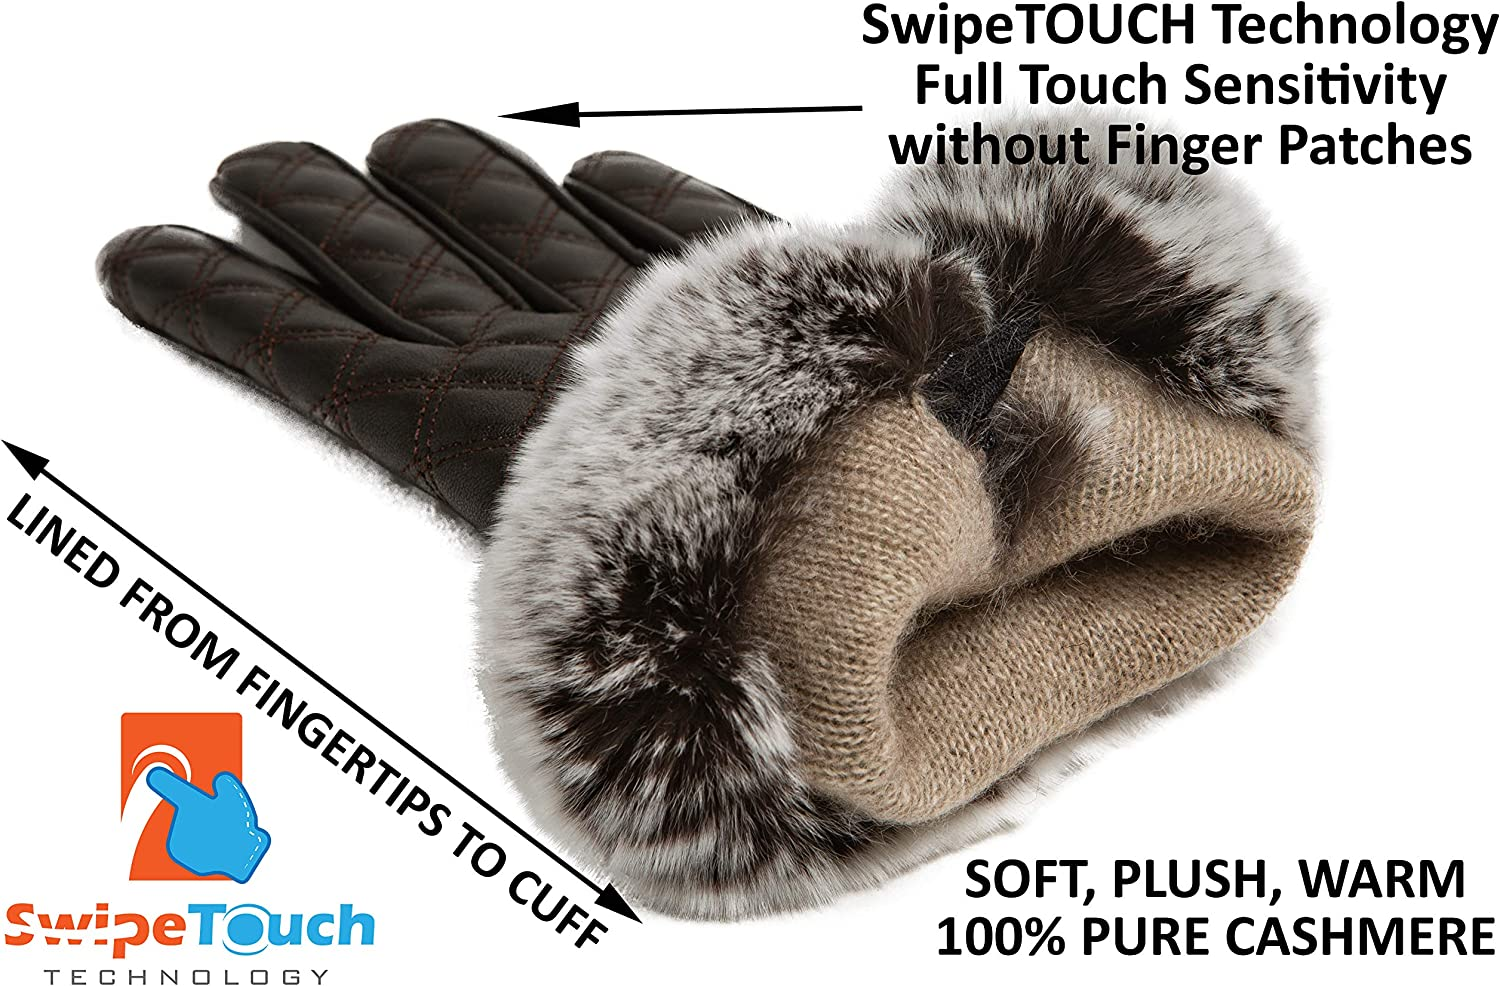 Genuine Rex Rabbit Fur Cuff Touchscreen Gift Box by CANDOR AND CLASS Womens Cashmere Lined Sheepskin Leather Gloves